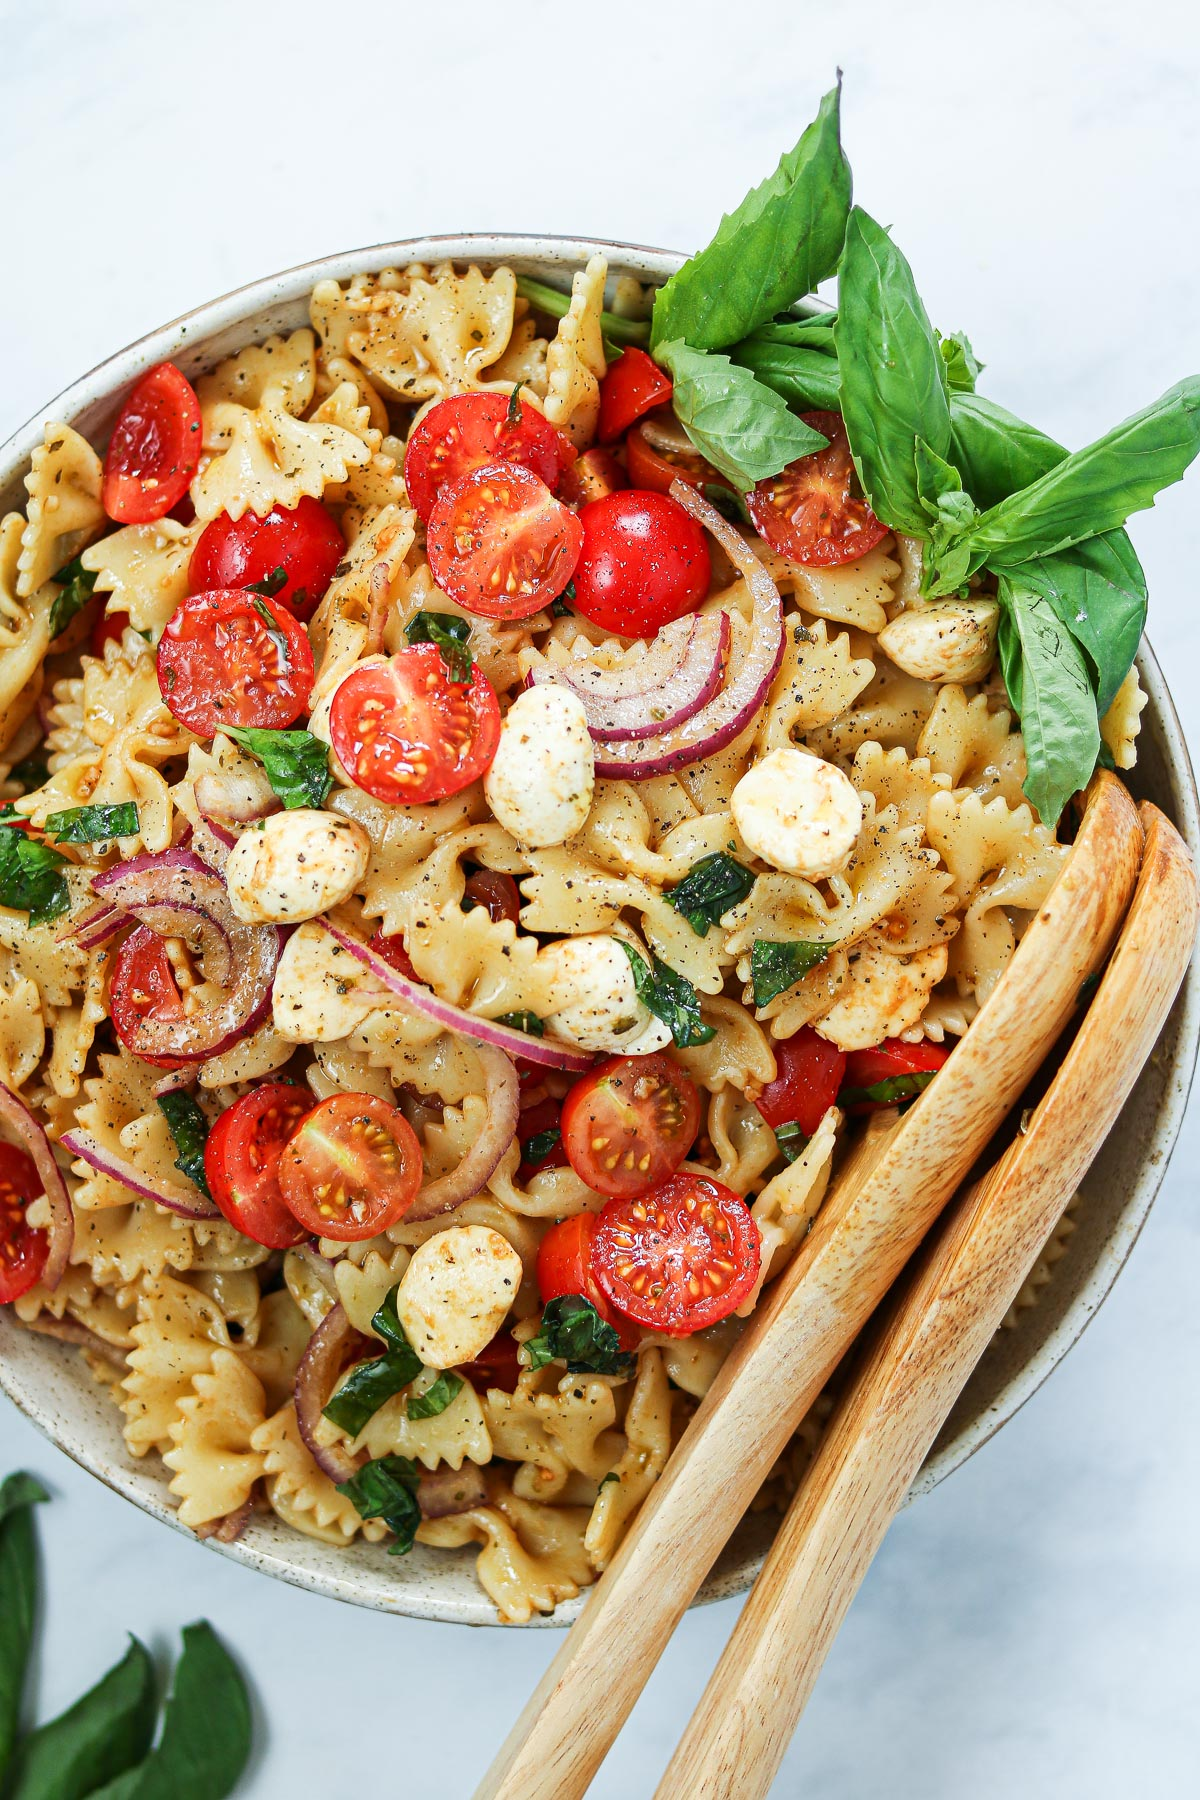 Pasta with cherry tomatoes, mozzarella, basil, and a balsamic dressing in a serving bowl